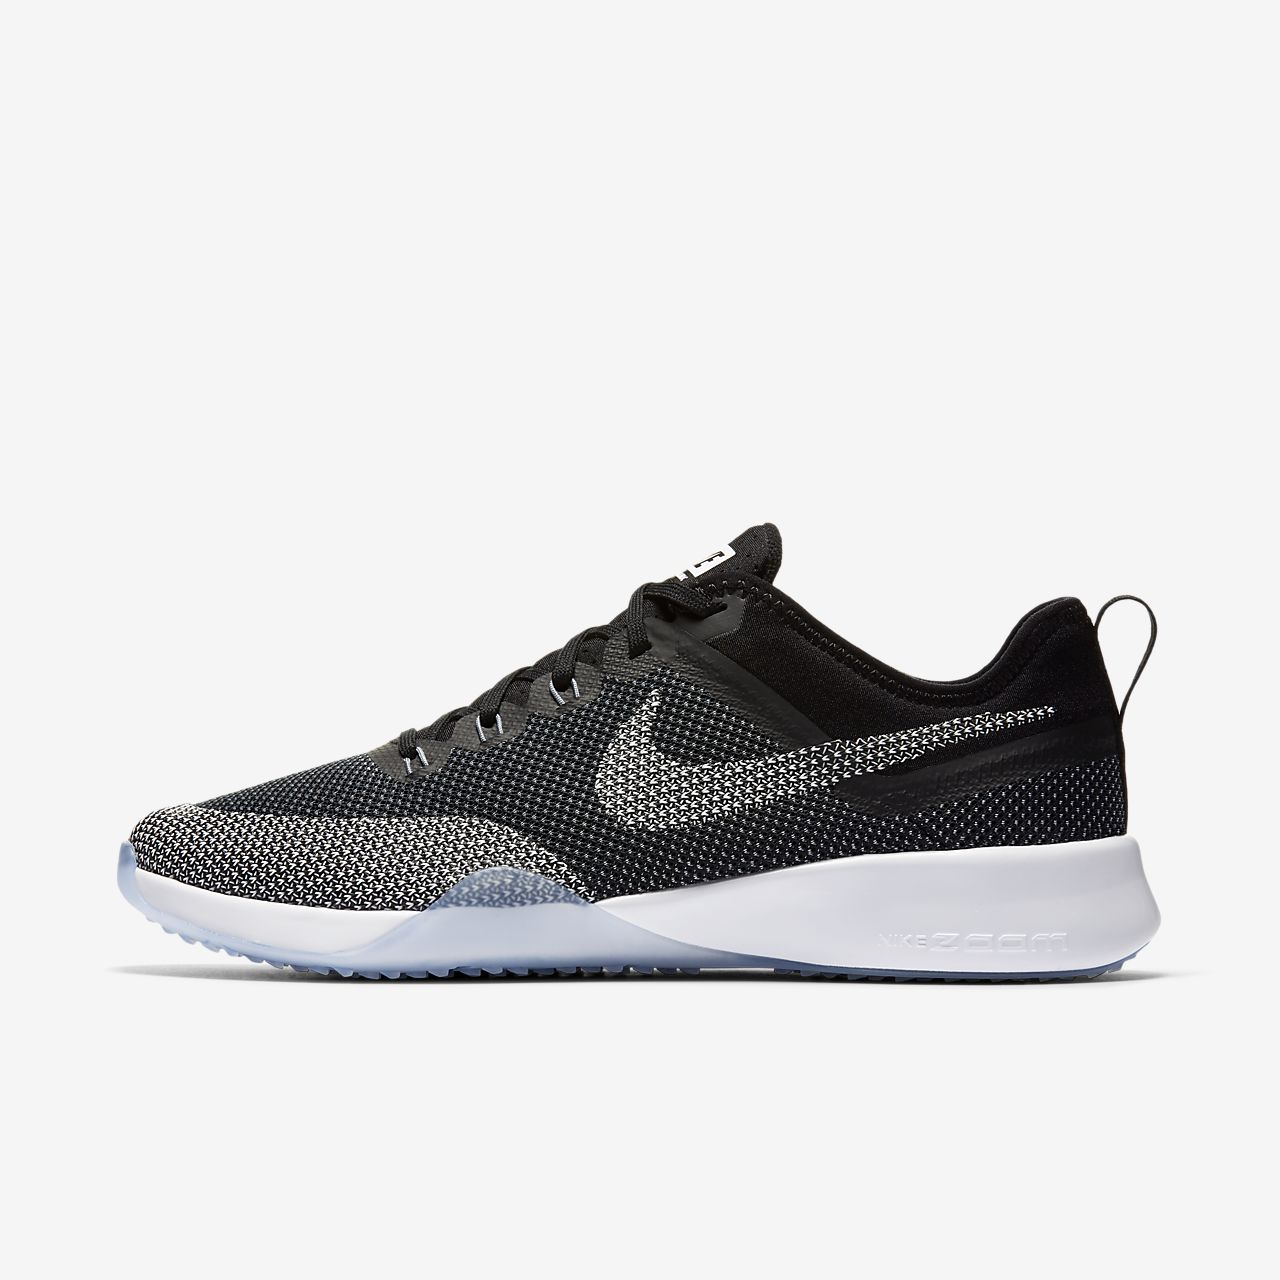 Nike Zoom Fitness Women's Training Shoes White/Black mN3141Q